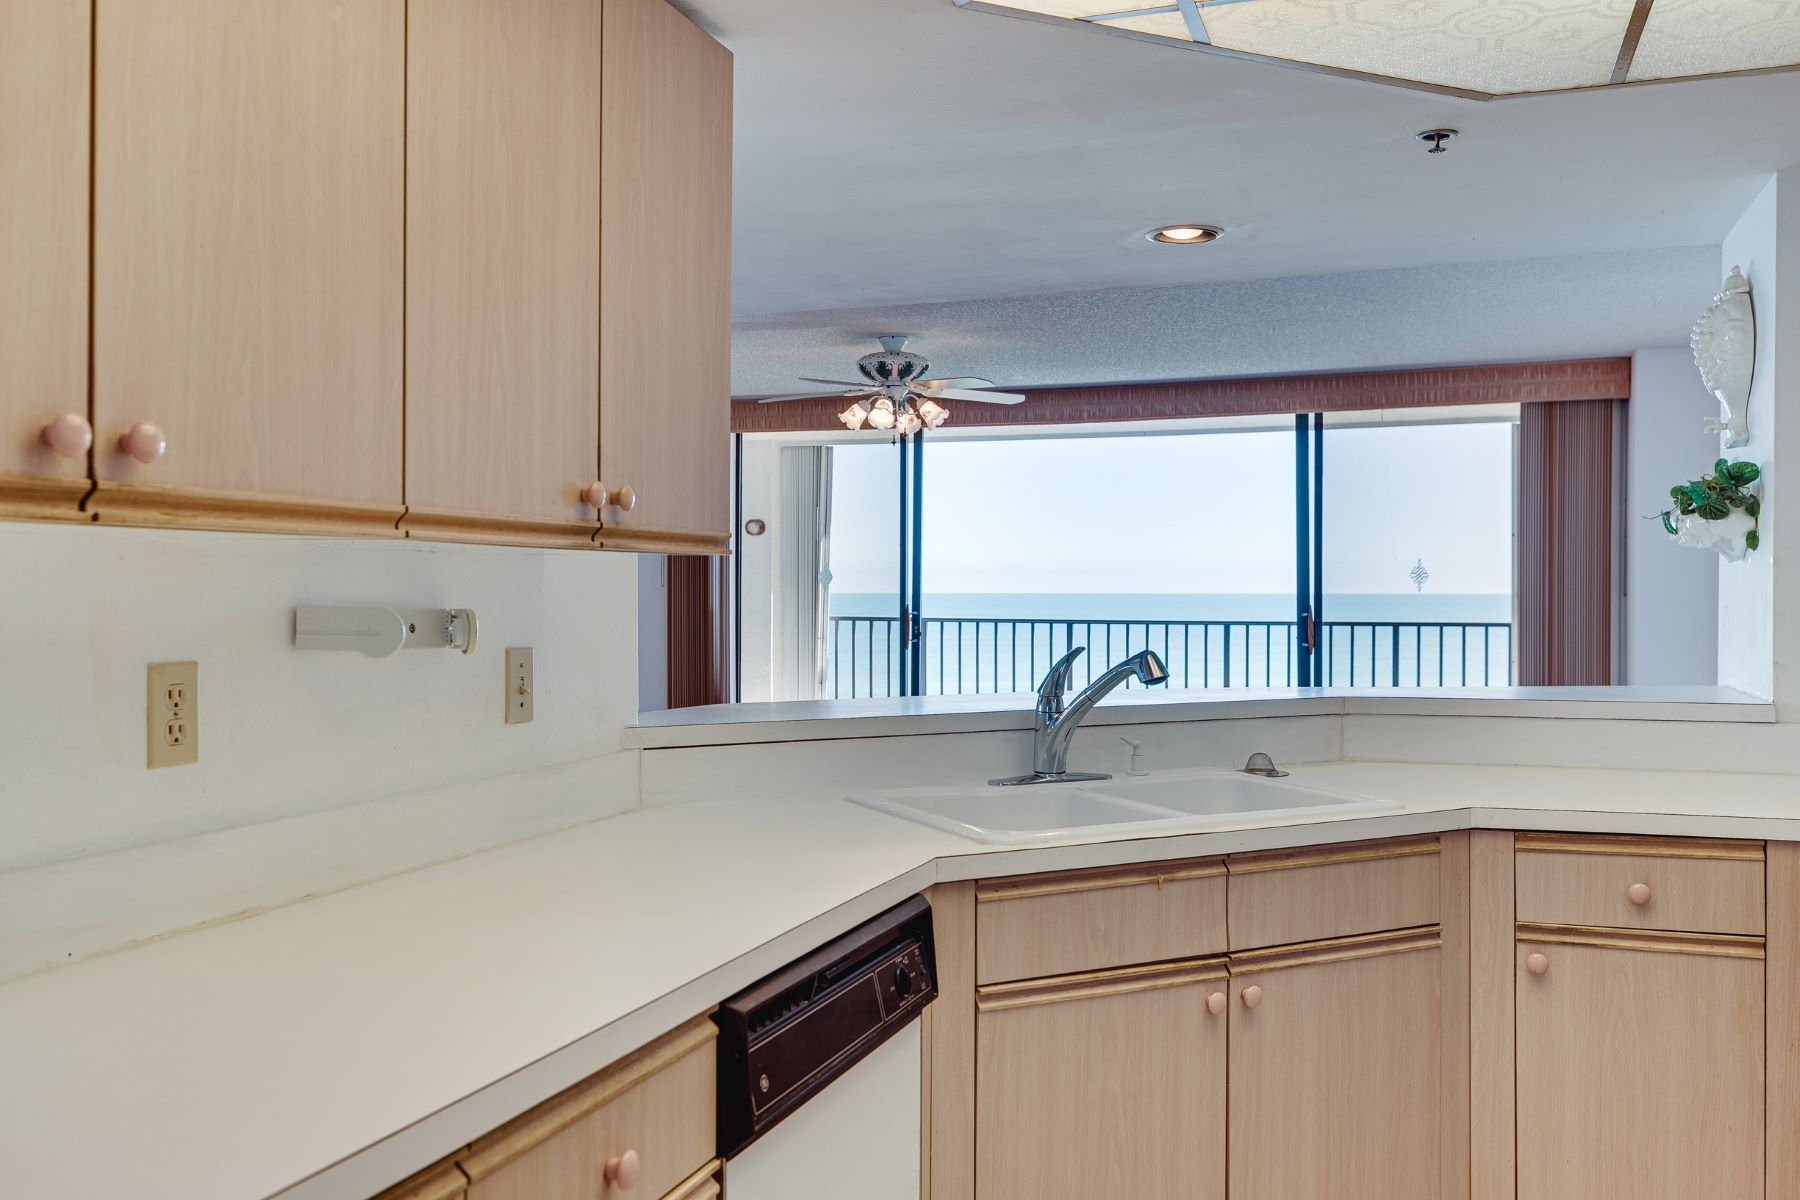 Additional photo for property listing at 3120 N Highway A1a 503S Hutchinson Island, Florida 34949 United States